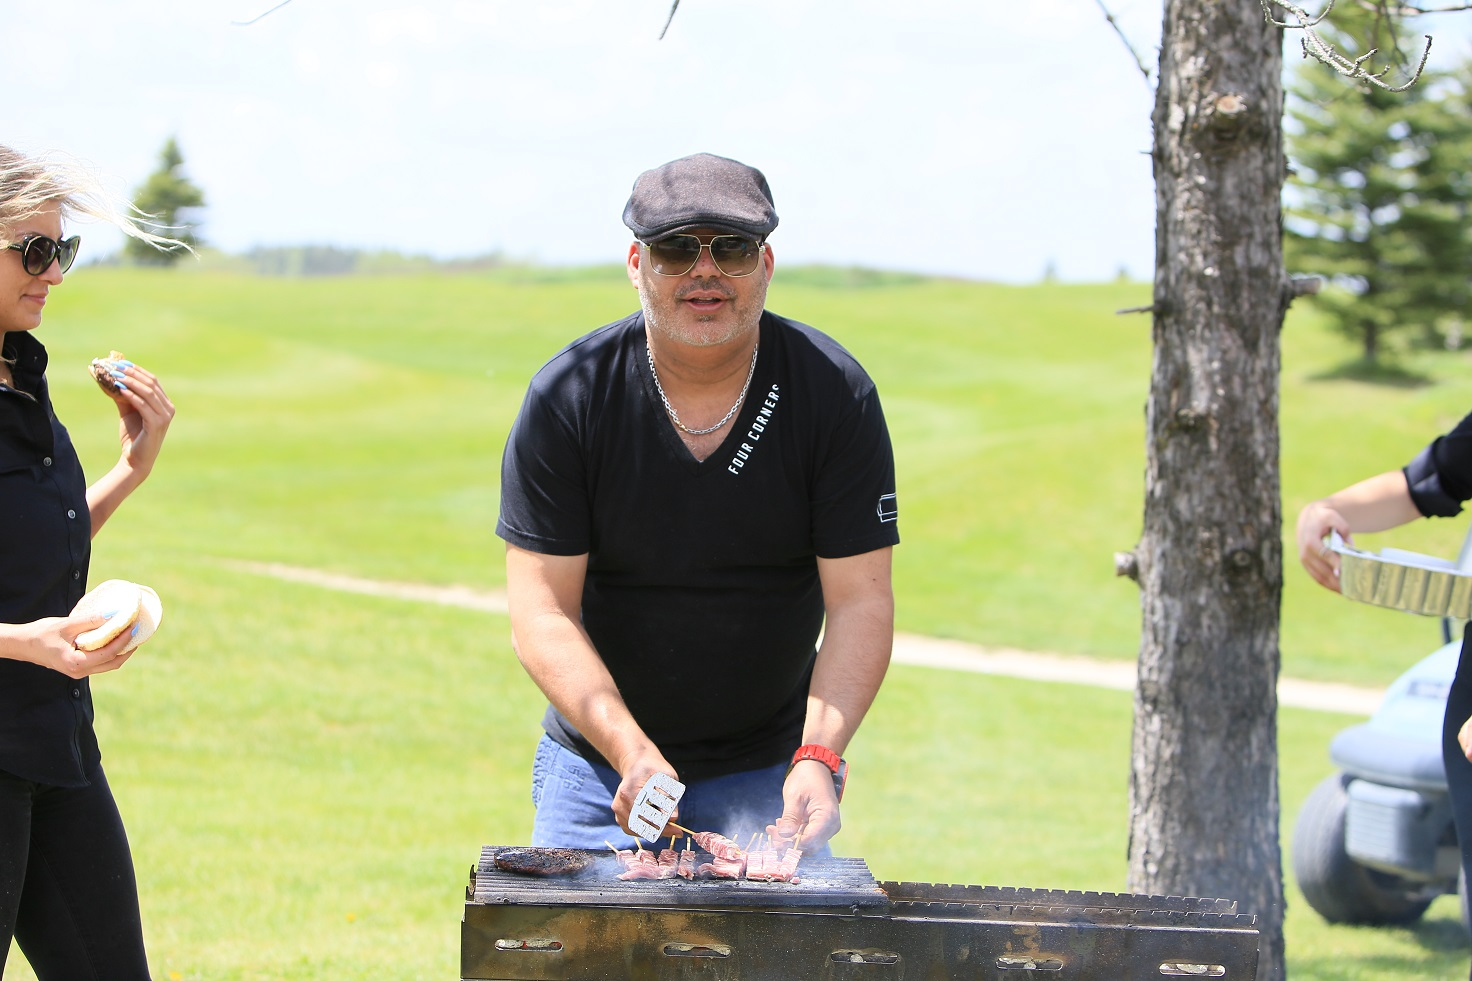 2019 Bolton Rotary Early Bird Golf Classic gallery image #14